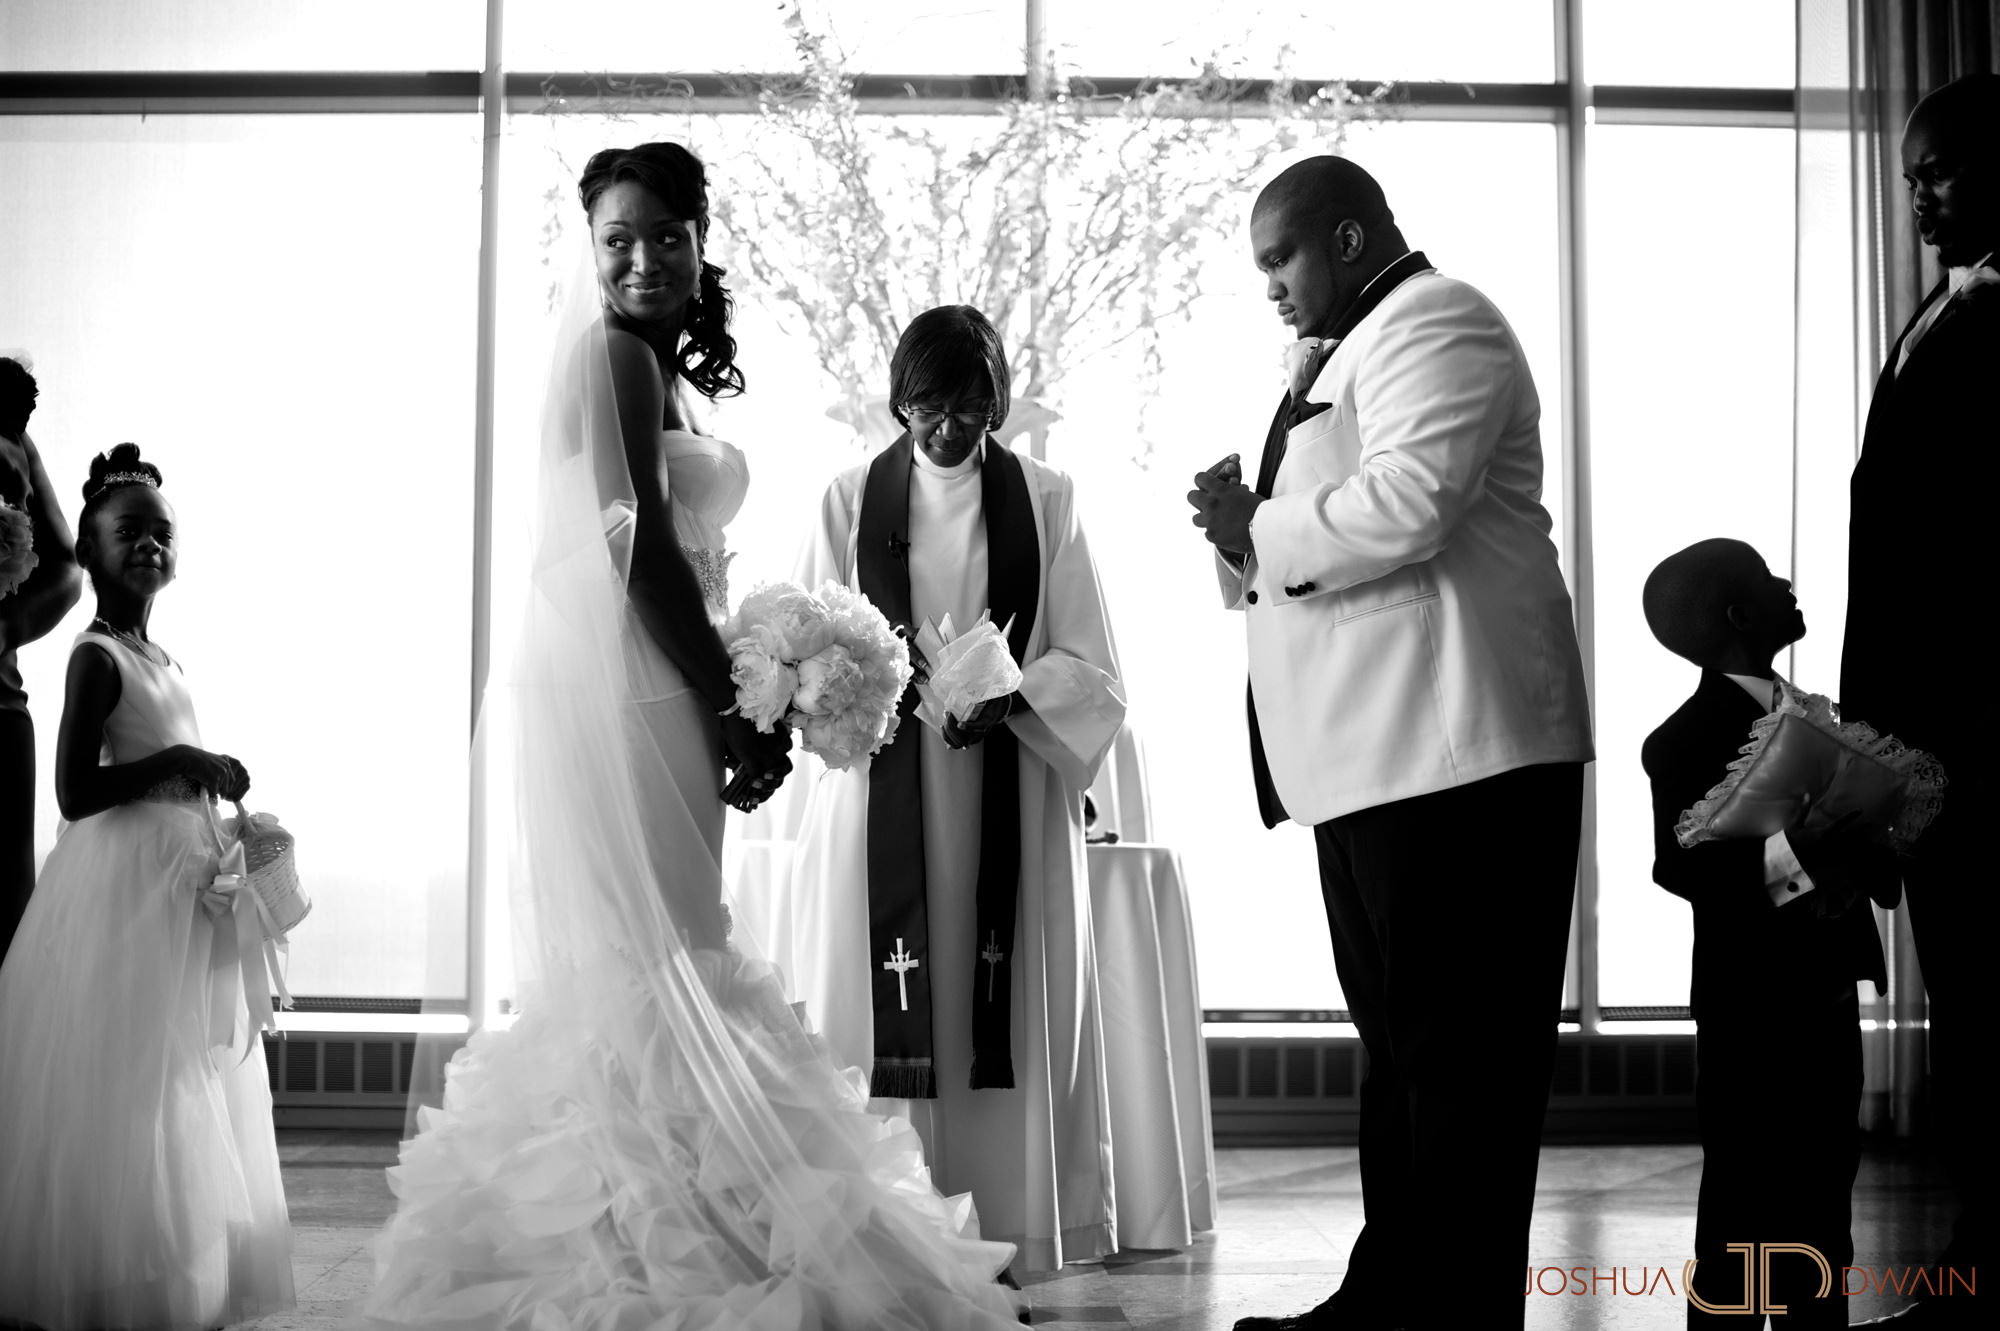 tasha-marcus-016-one-atlantic-atlantic-city-nj-wedding-photographer-joshua-dwain-tasha-marcus-023-one-atlantic-atlantic-city-nj-wedding-photographer-joshua-dwain-2012-05-27_tm_340